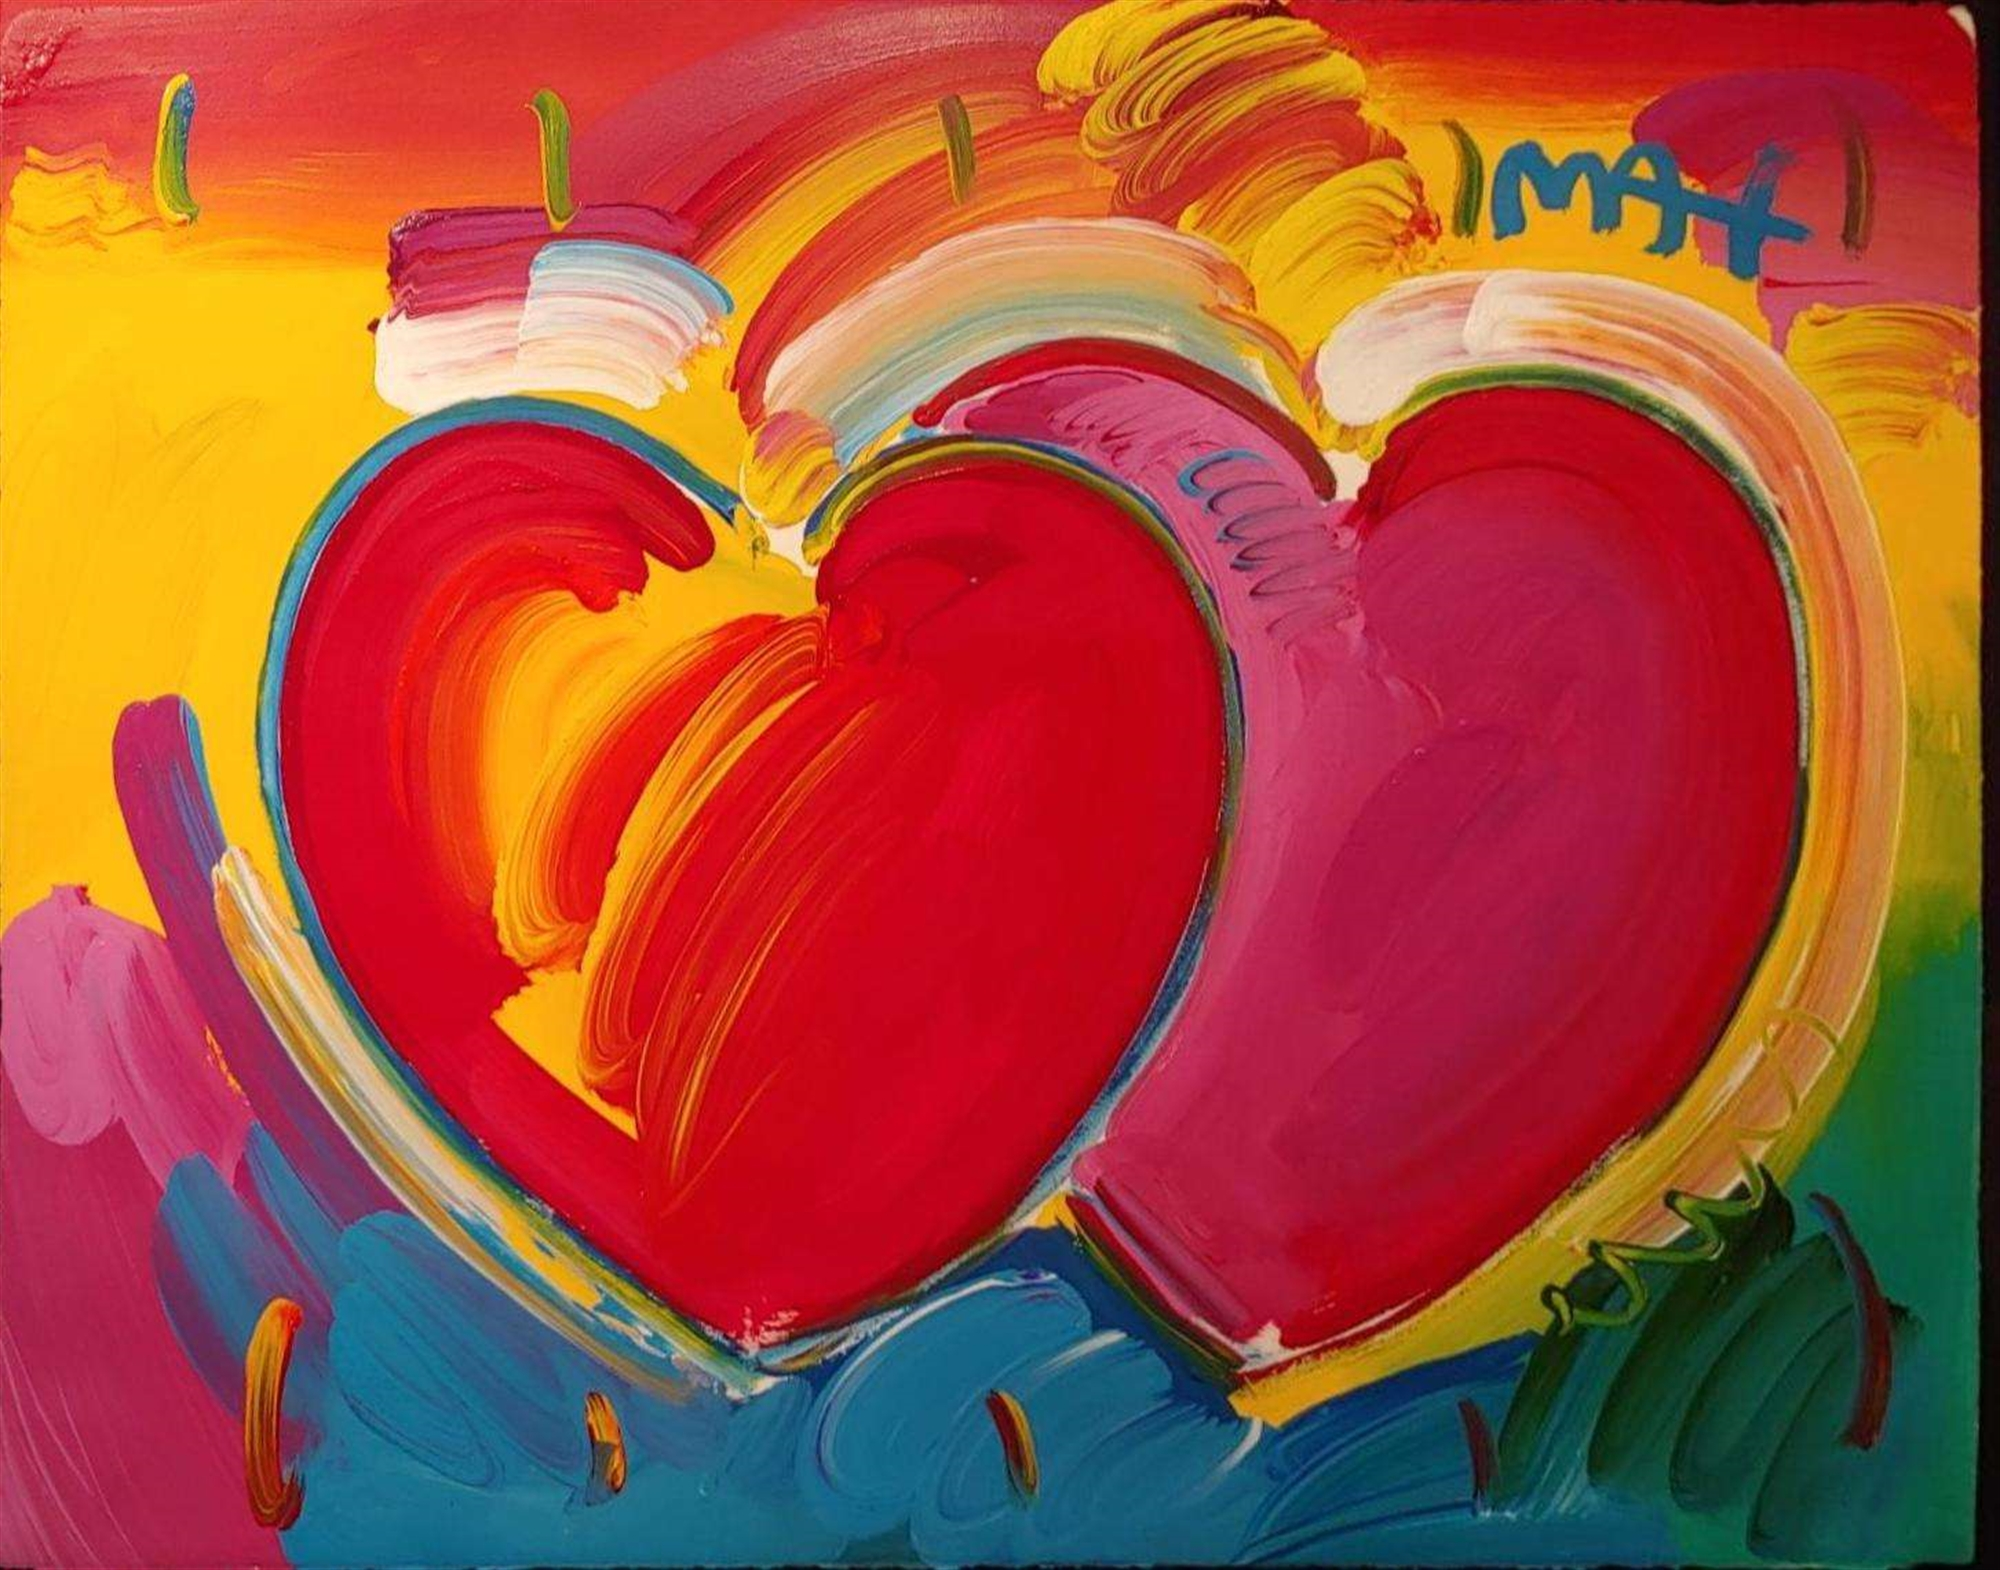 TWO HEARTS by Peter Max